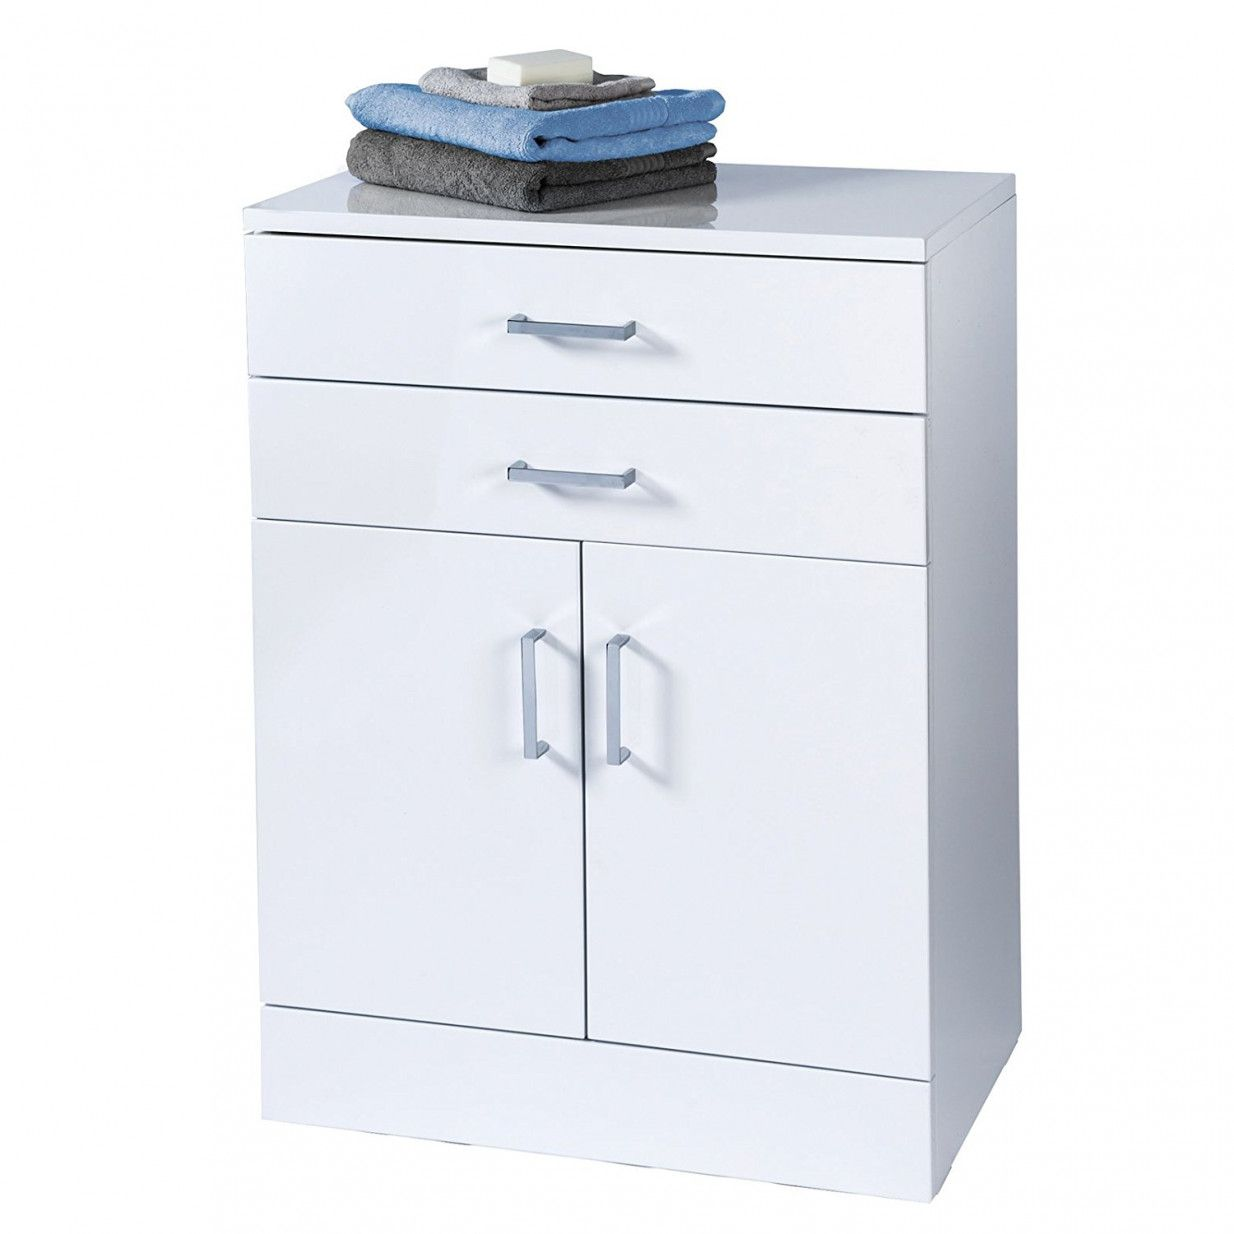 77+ Bathroom Cabinets Free Standing White - Modern Interior Paint ...